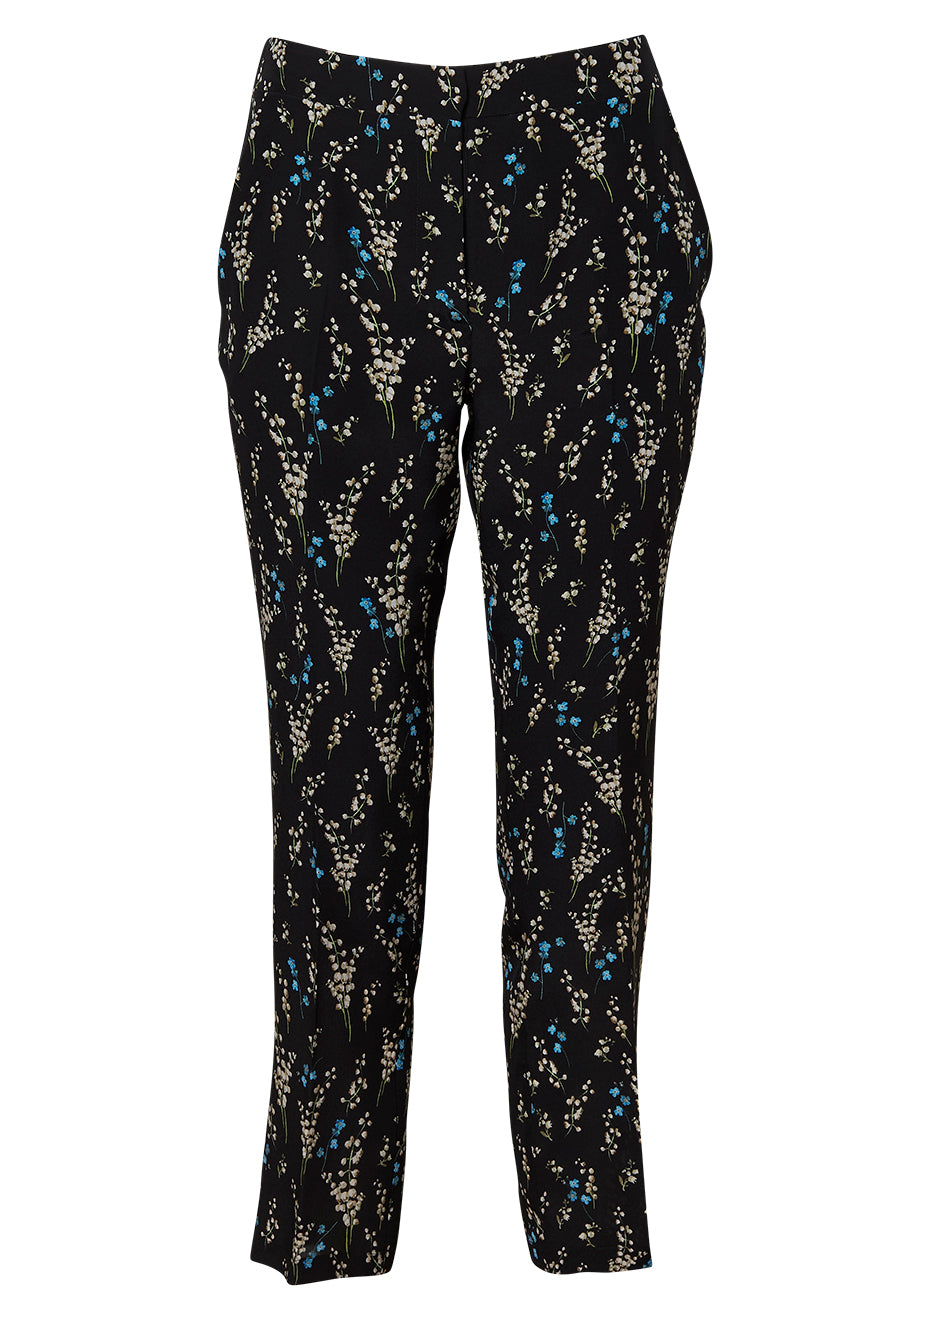 Gianna Cropped Cigarette Pants